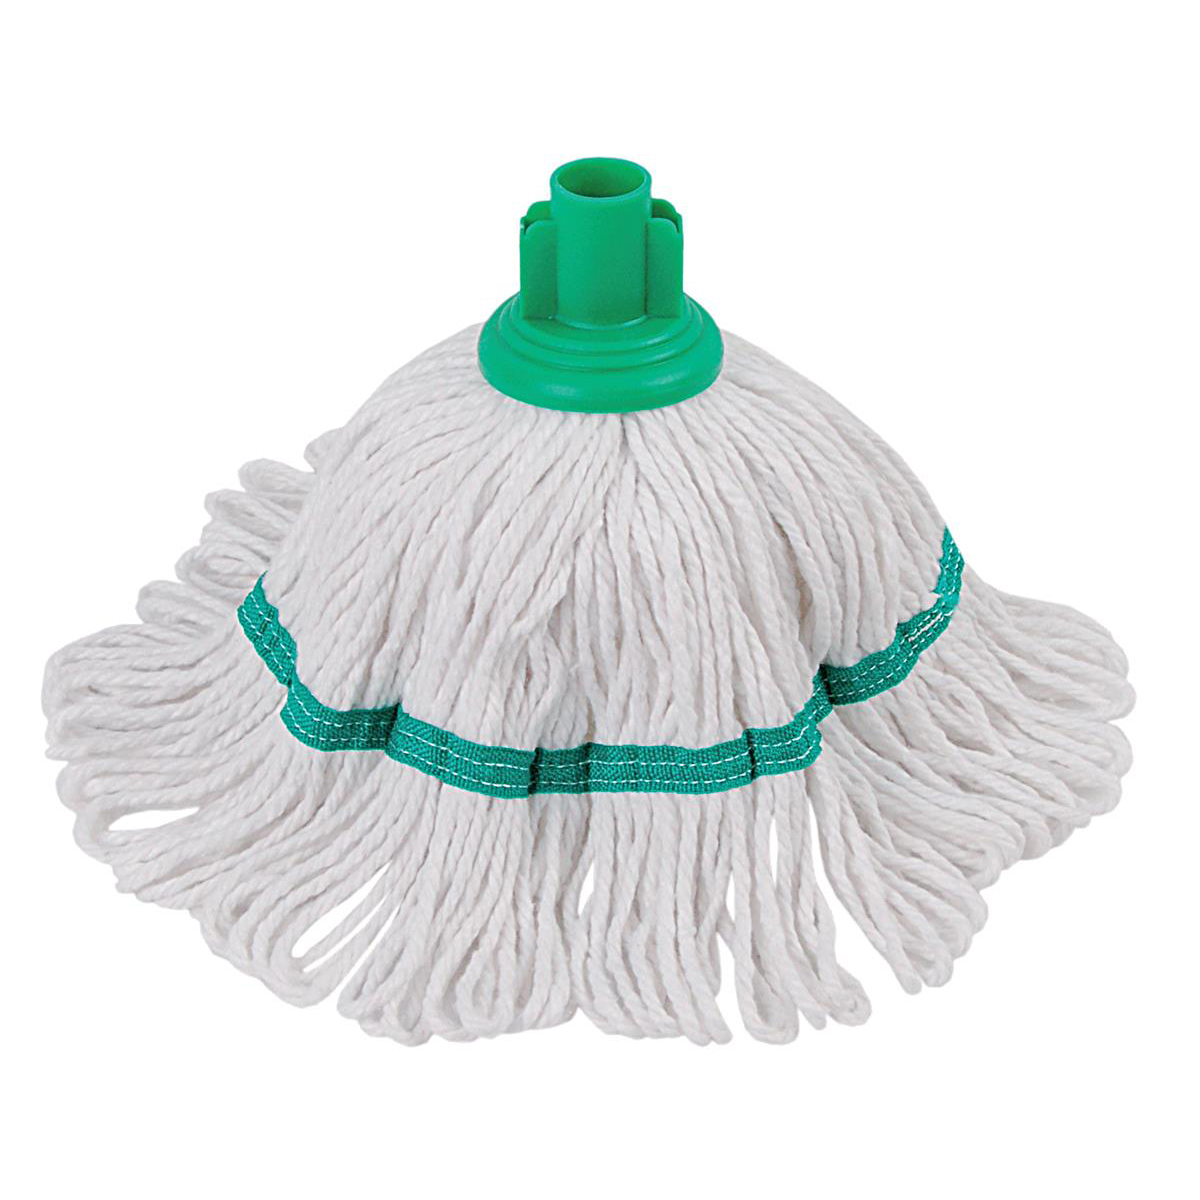 Robert Scott & Sons Hygiemix T1 Socket Cotton & Synthetic Colour-coded Mop 200g Green Ref MHH200G